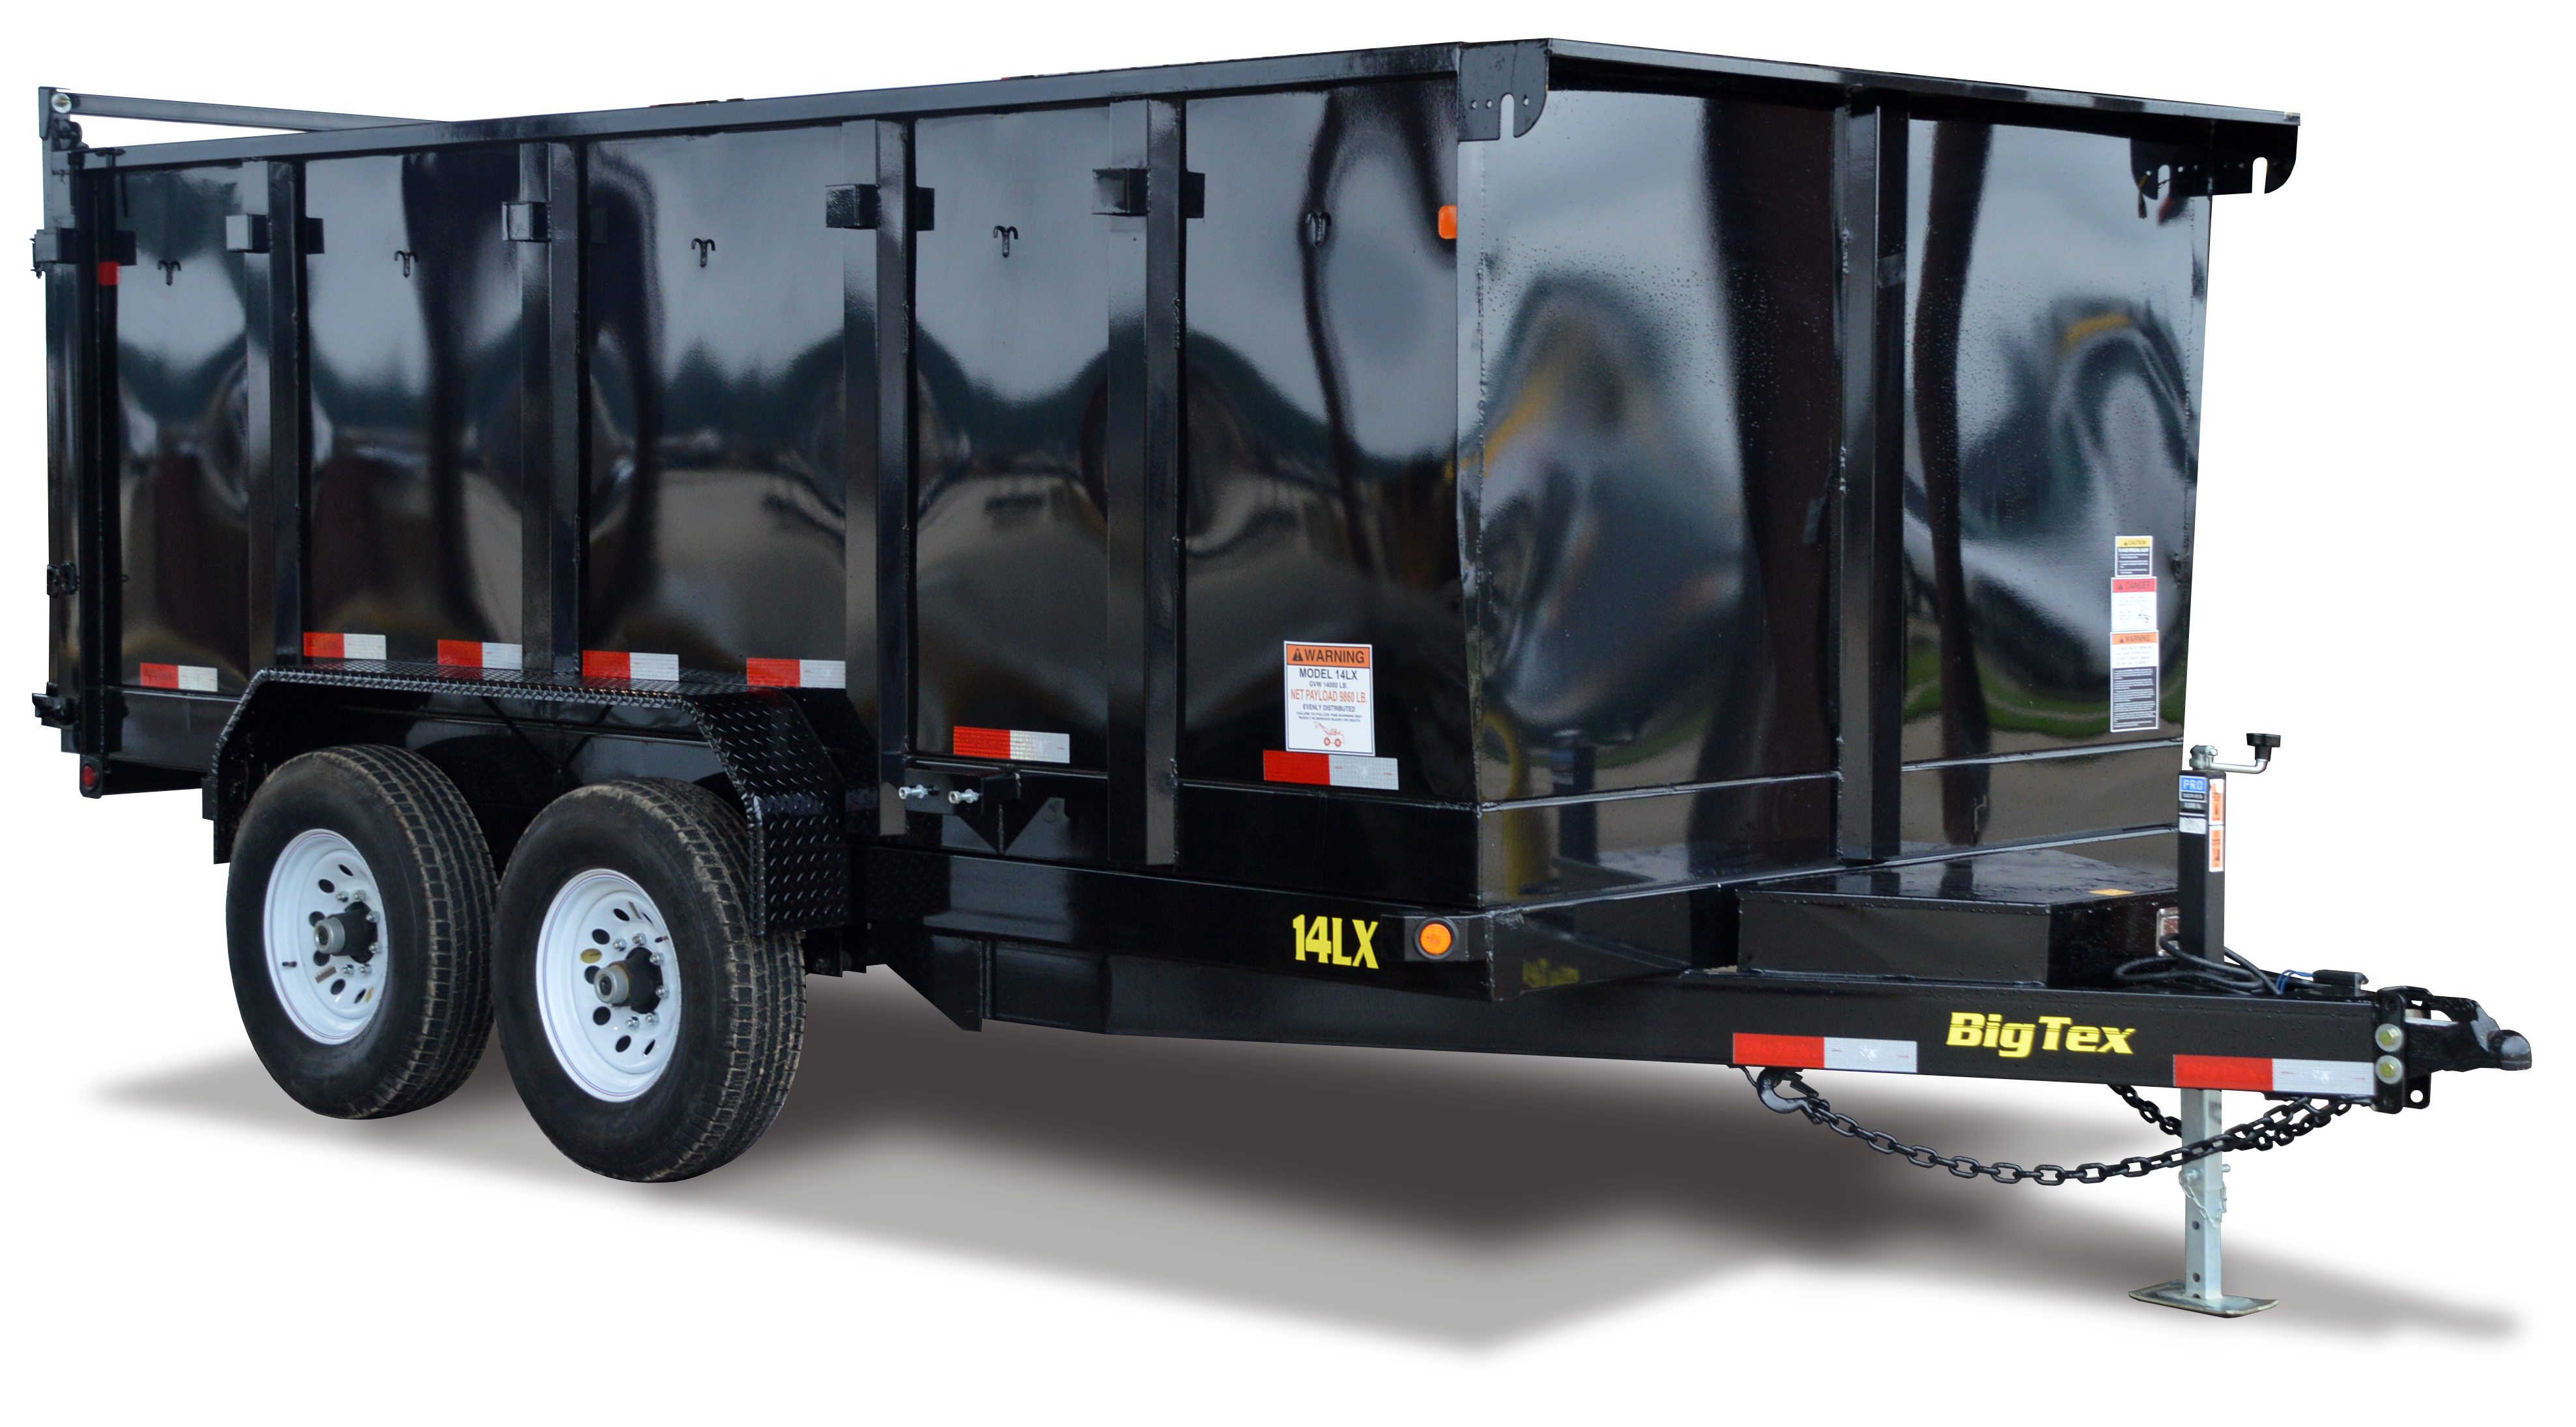 Big Tex 14LX-P4 Trailer